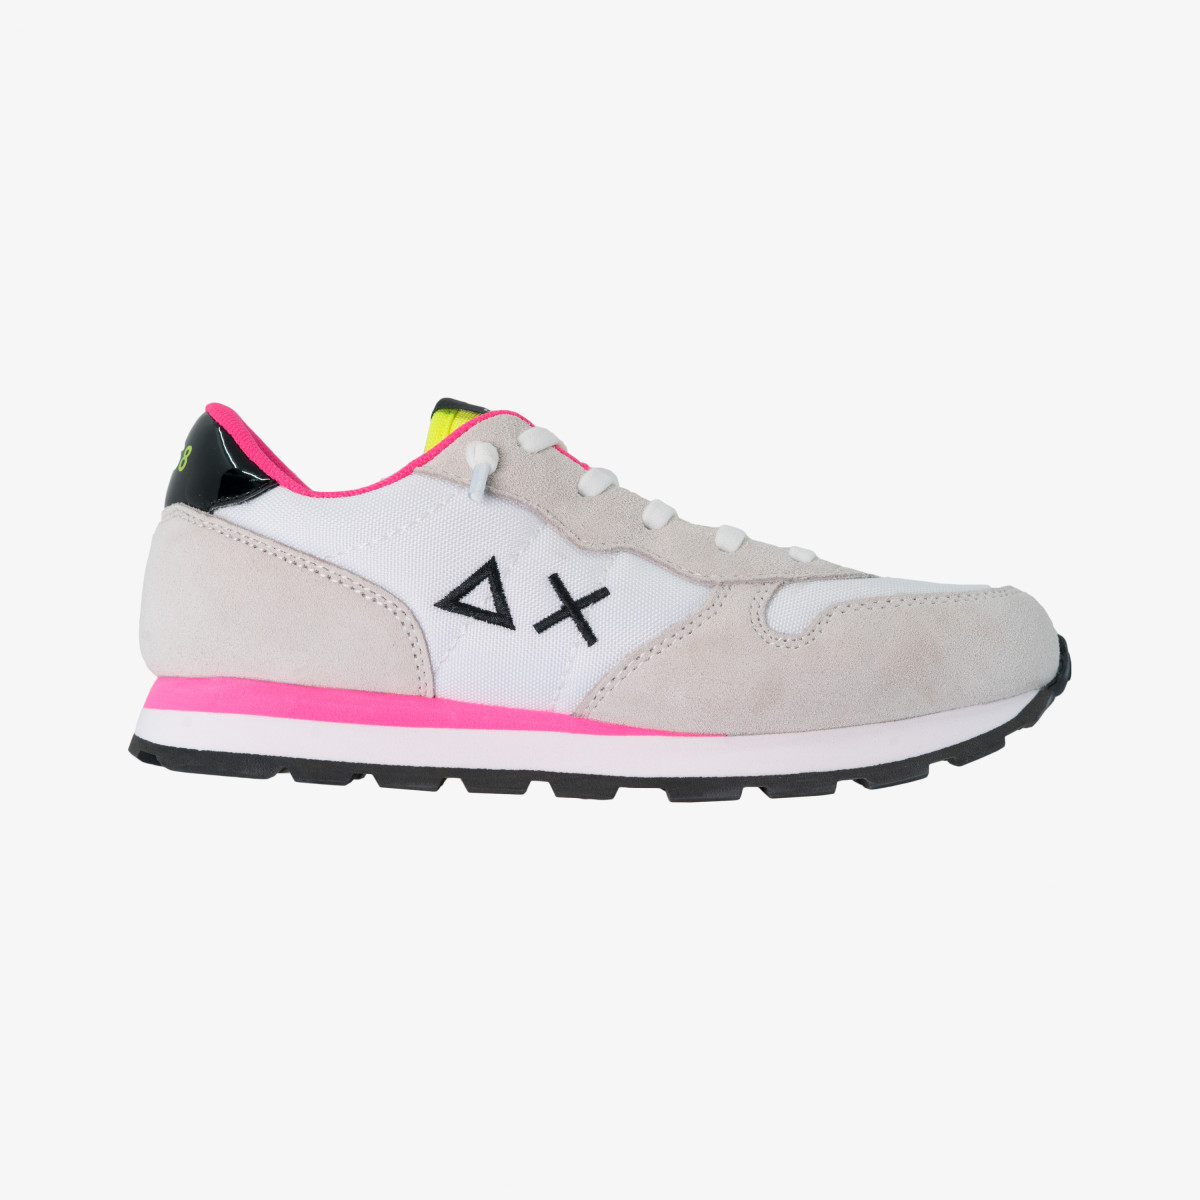 GIRL'S ALLY SOLID WHITE/YELLOW FLUO